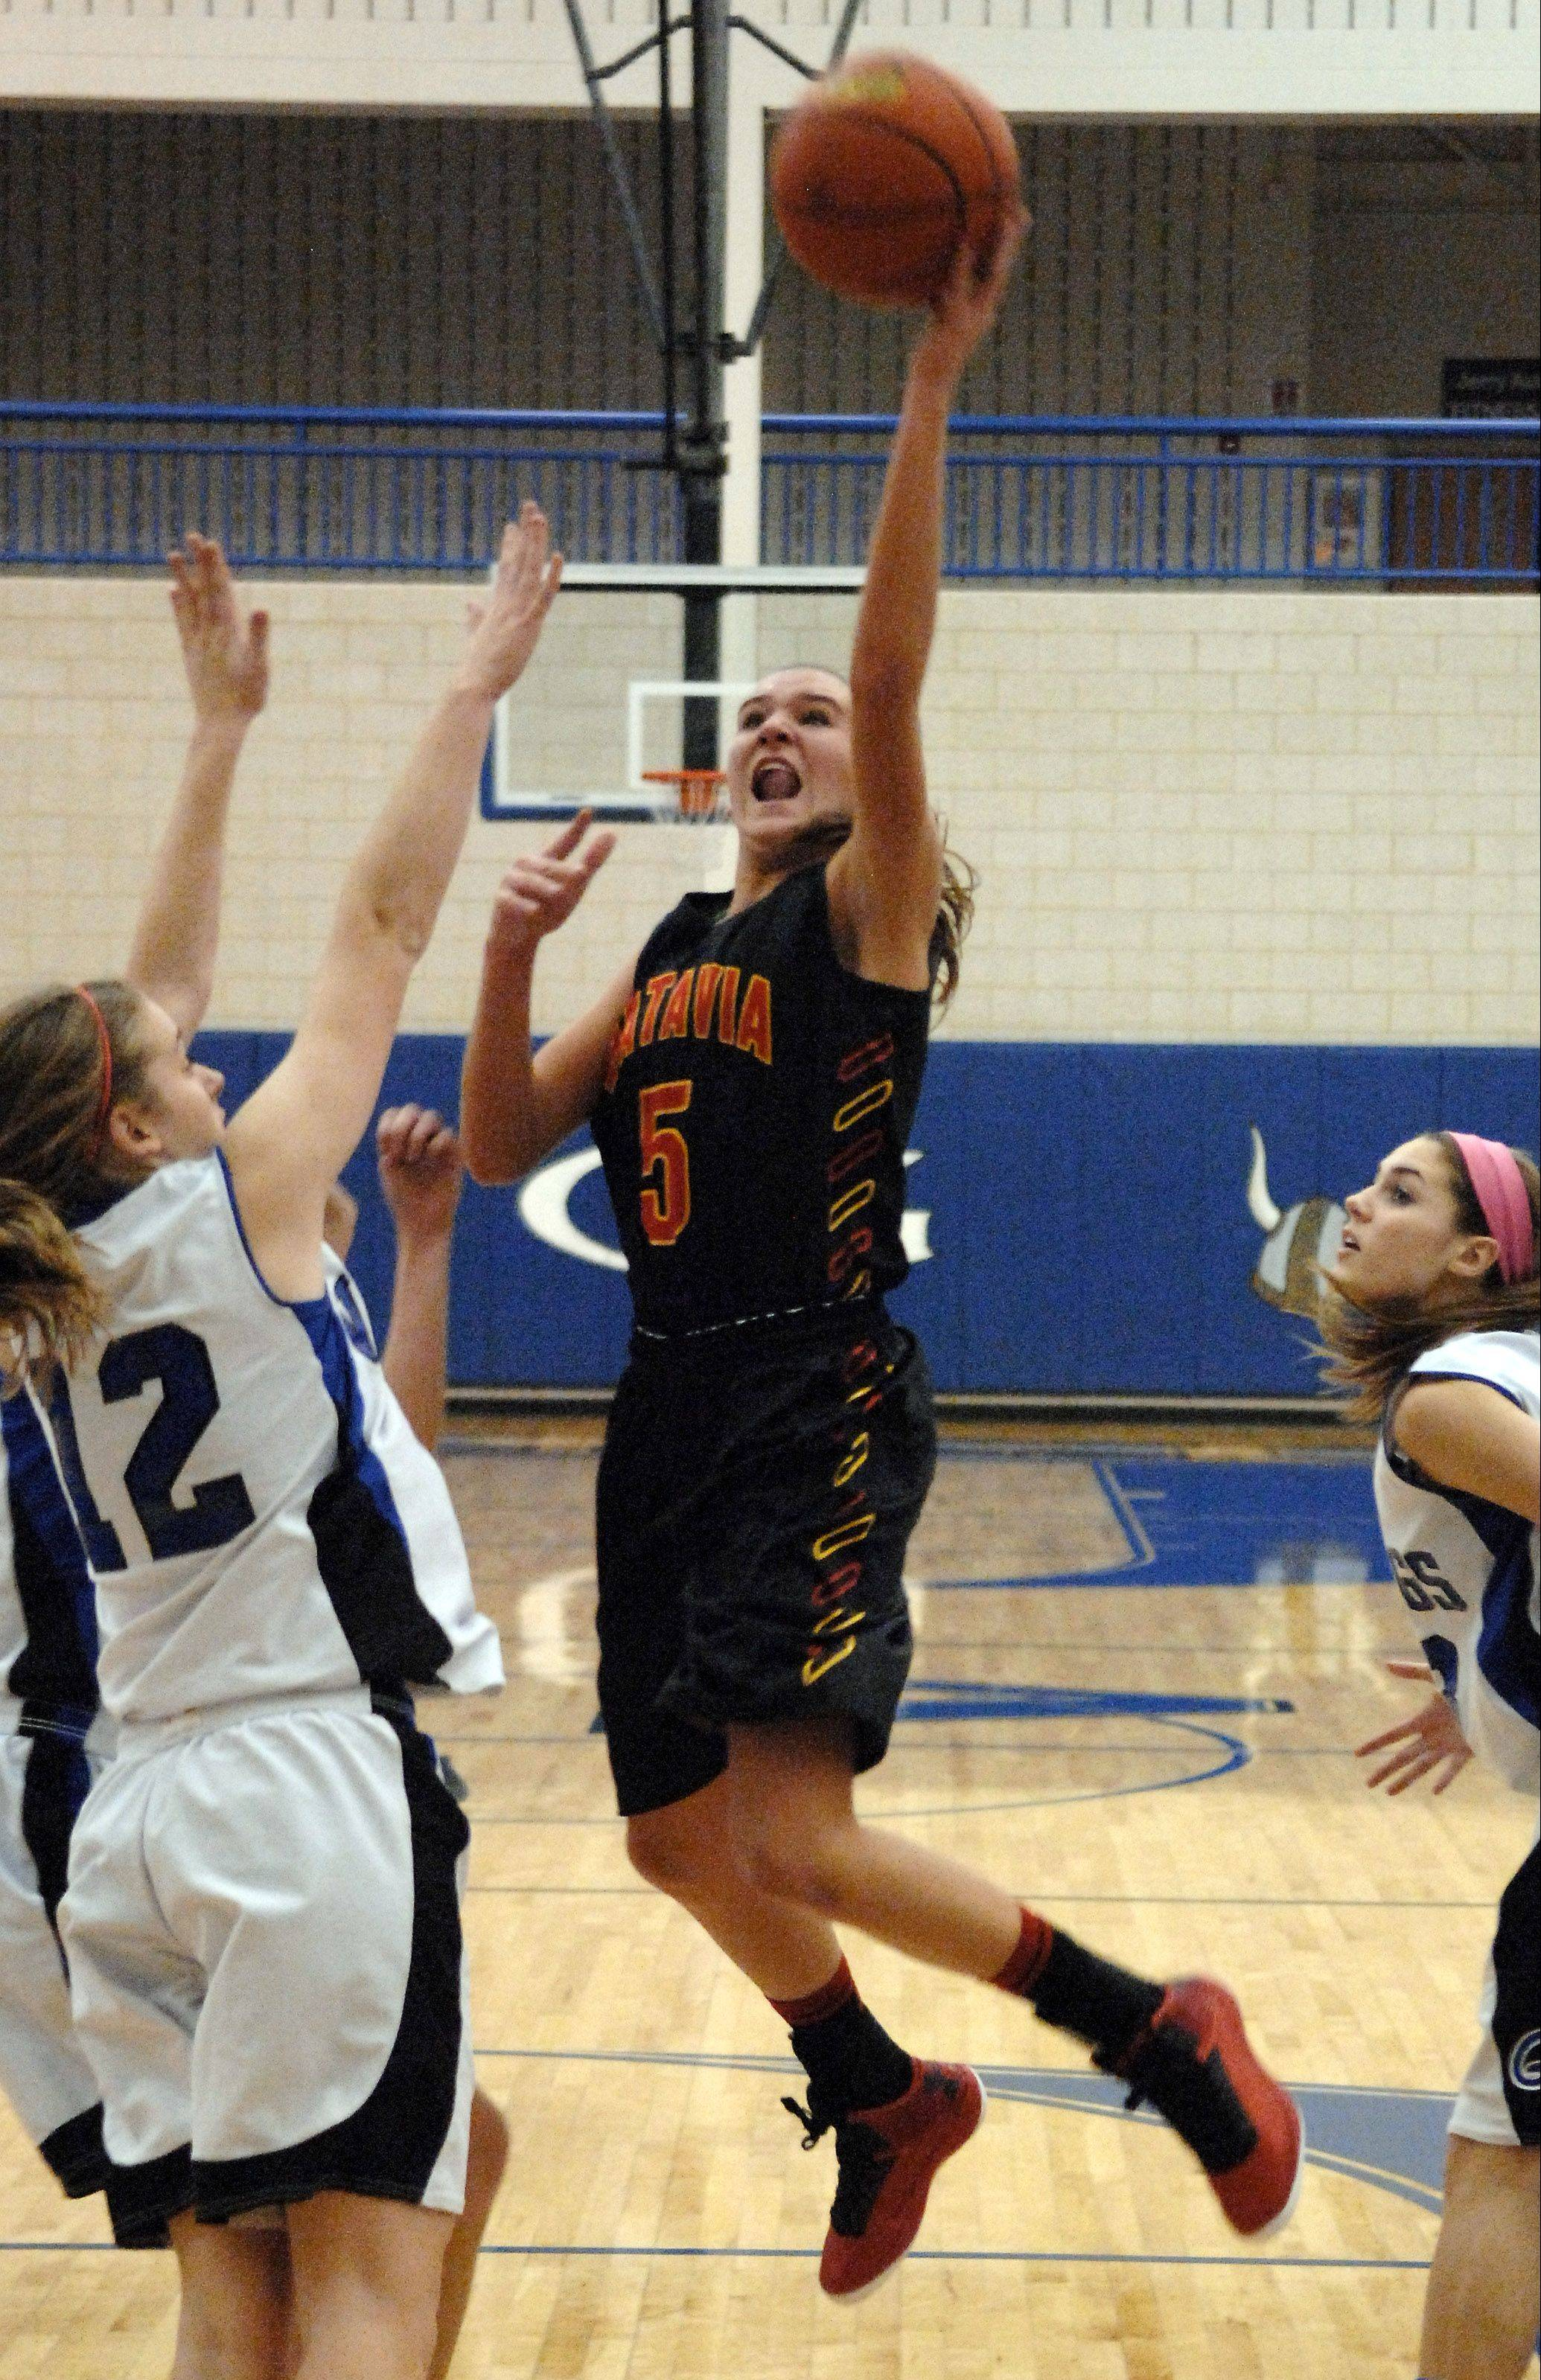 Liza Fruendt has one more year to light up the scoreboard at Batavia before heading to Missouri State.